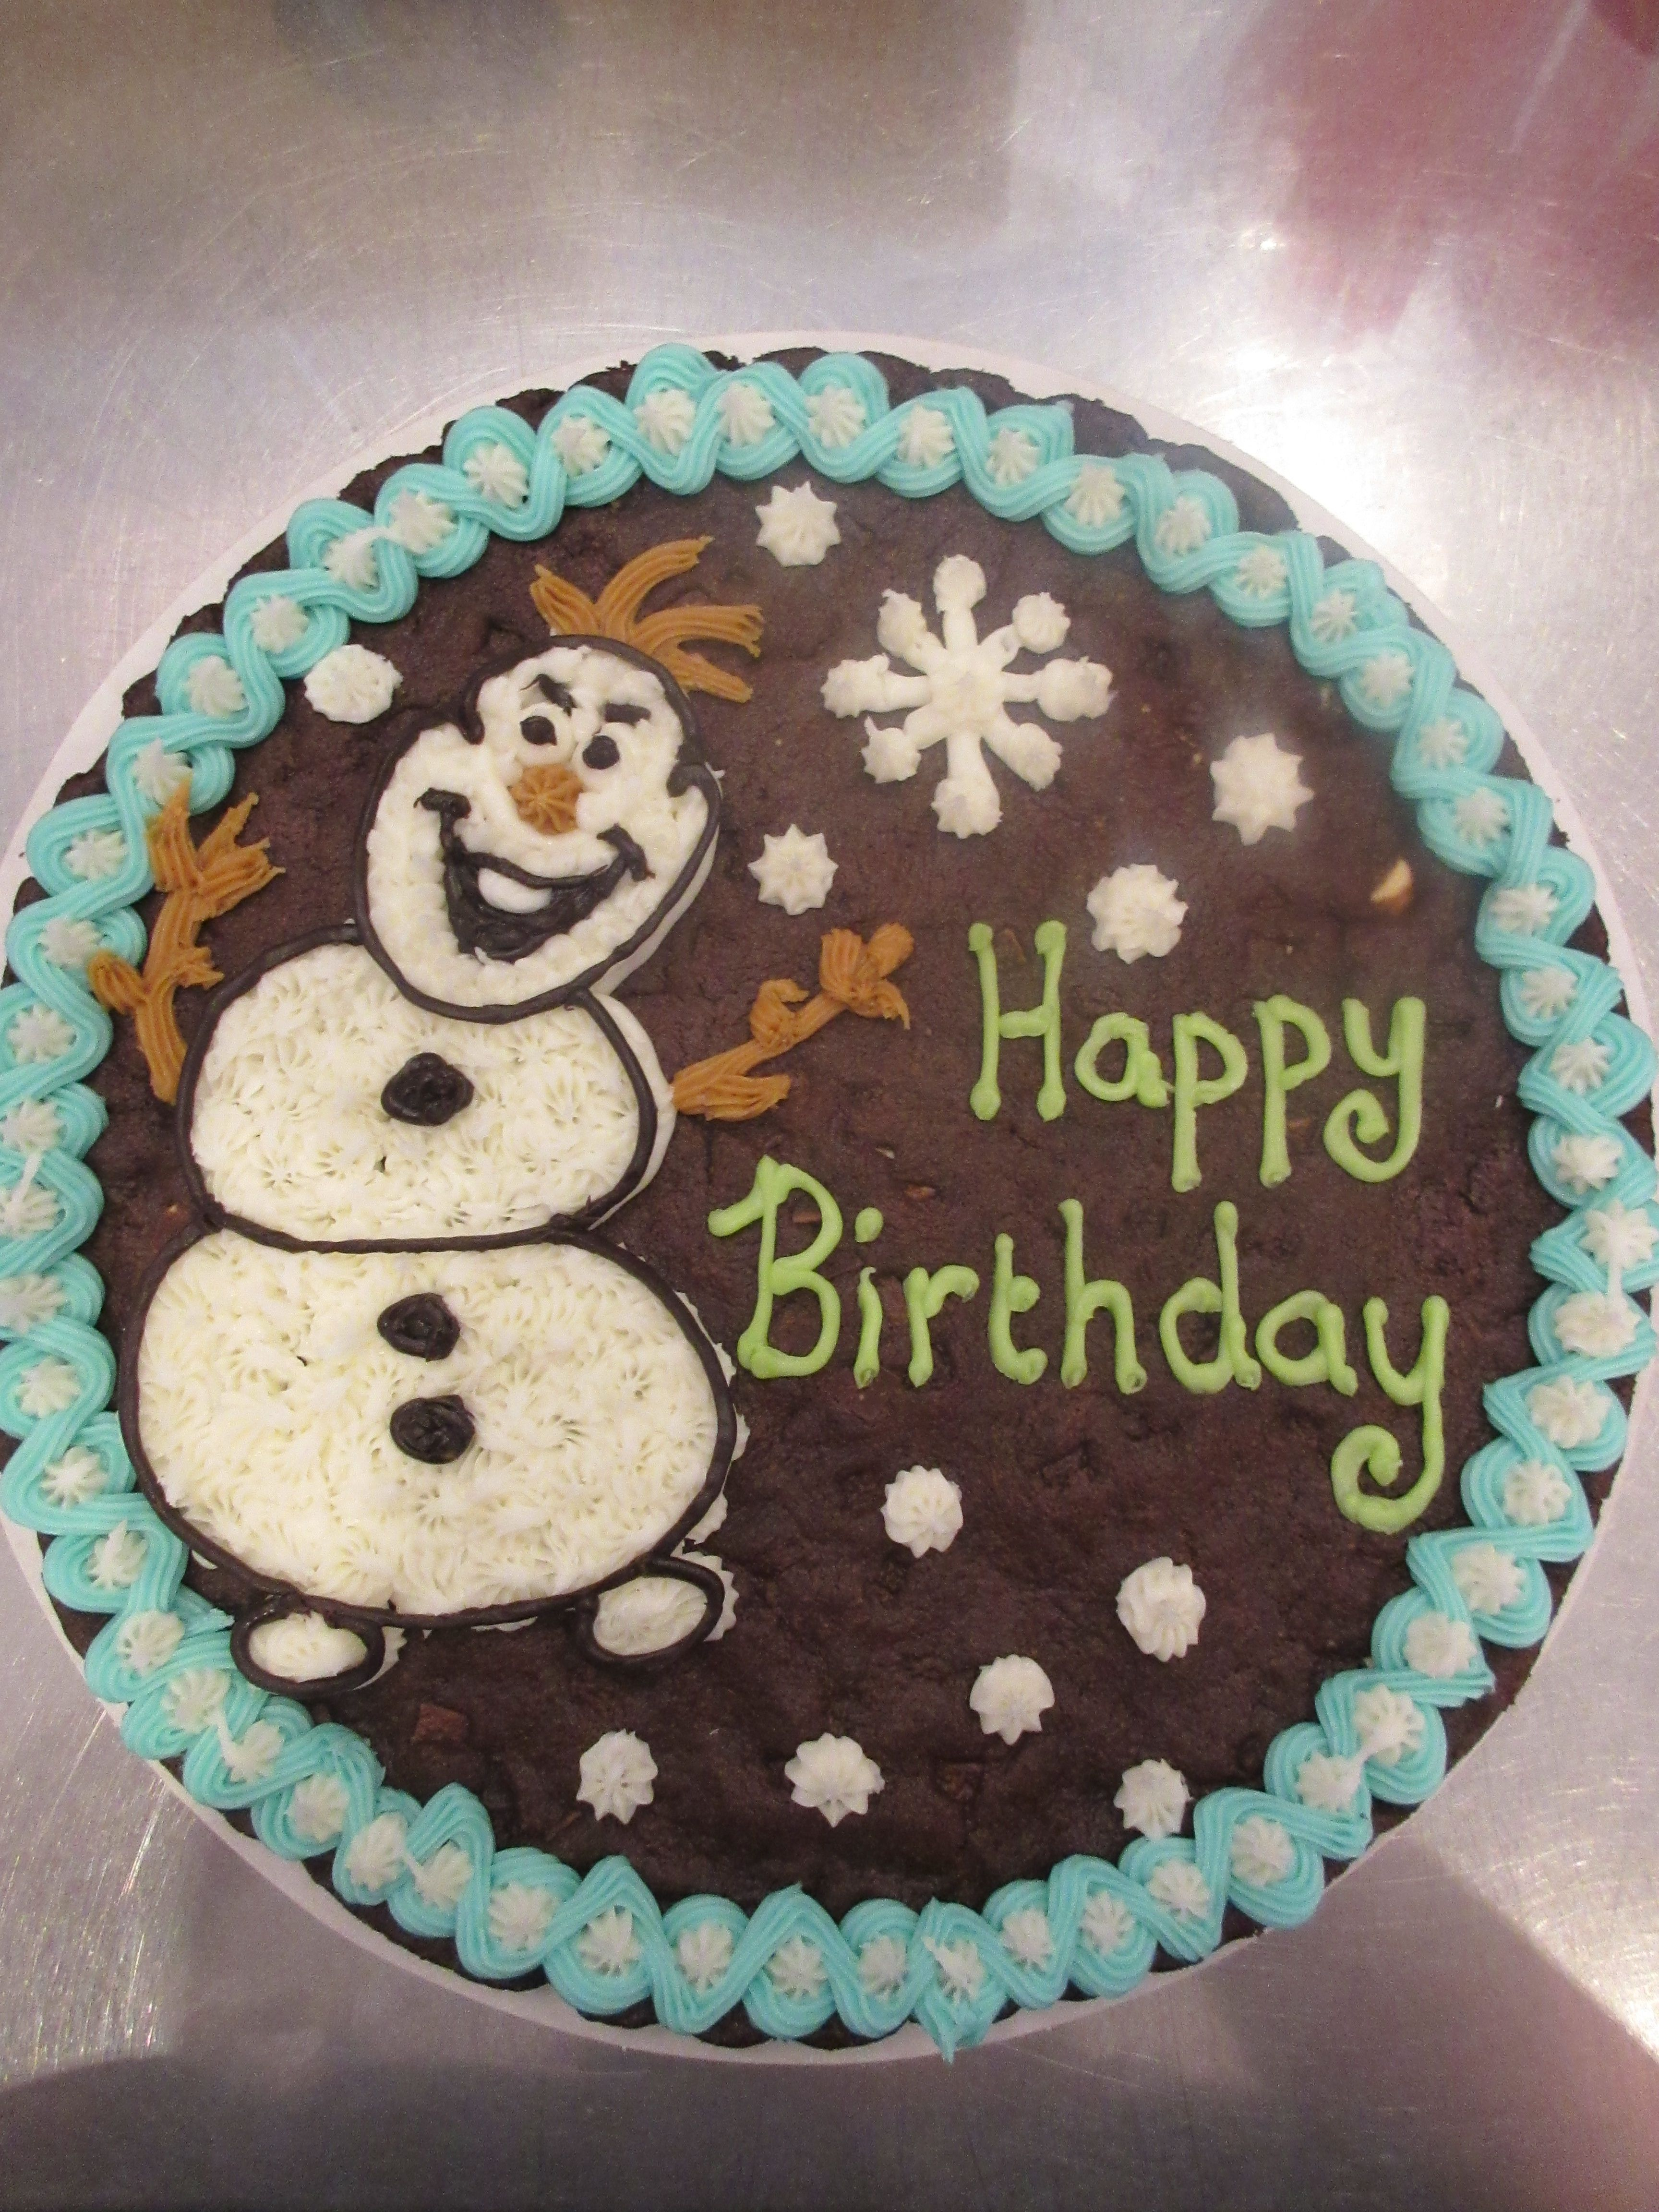 Frozen Olaf Design On Giant Millies Cookie By Hjs Cookies